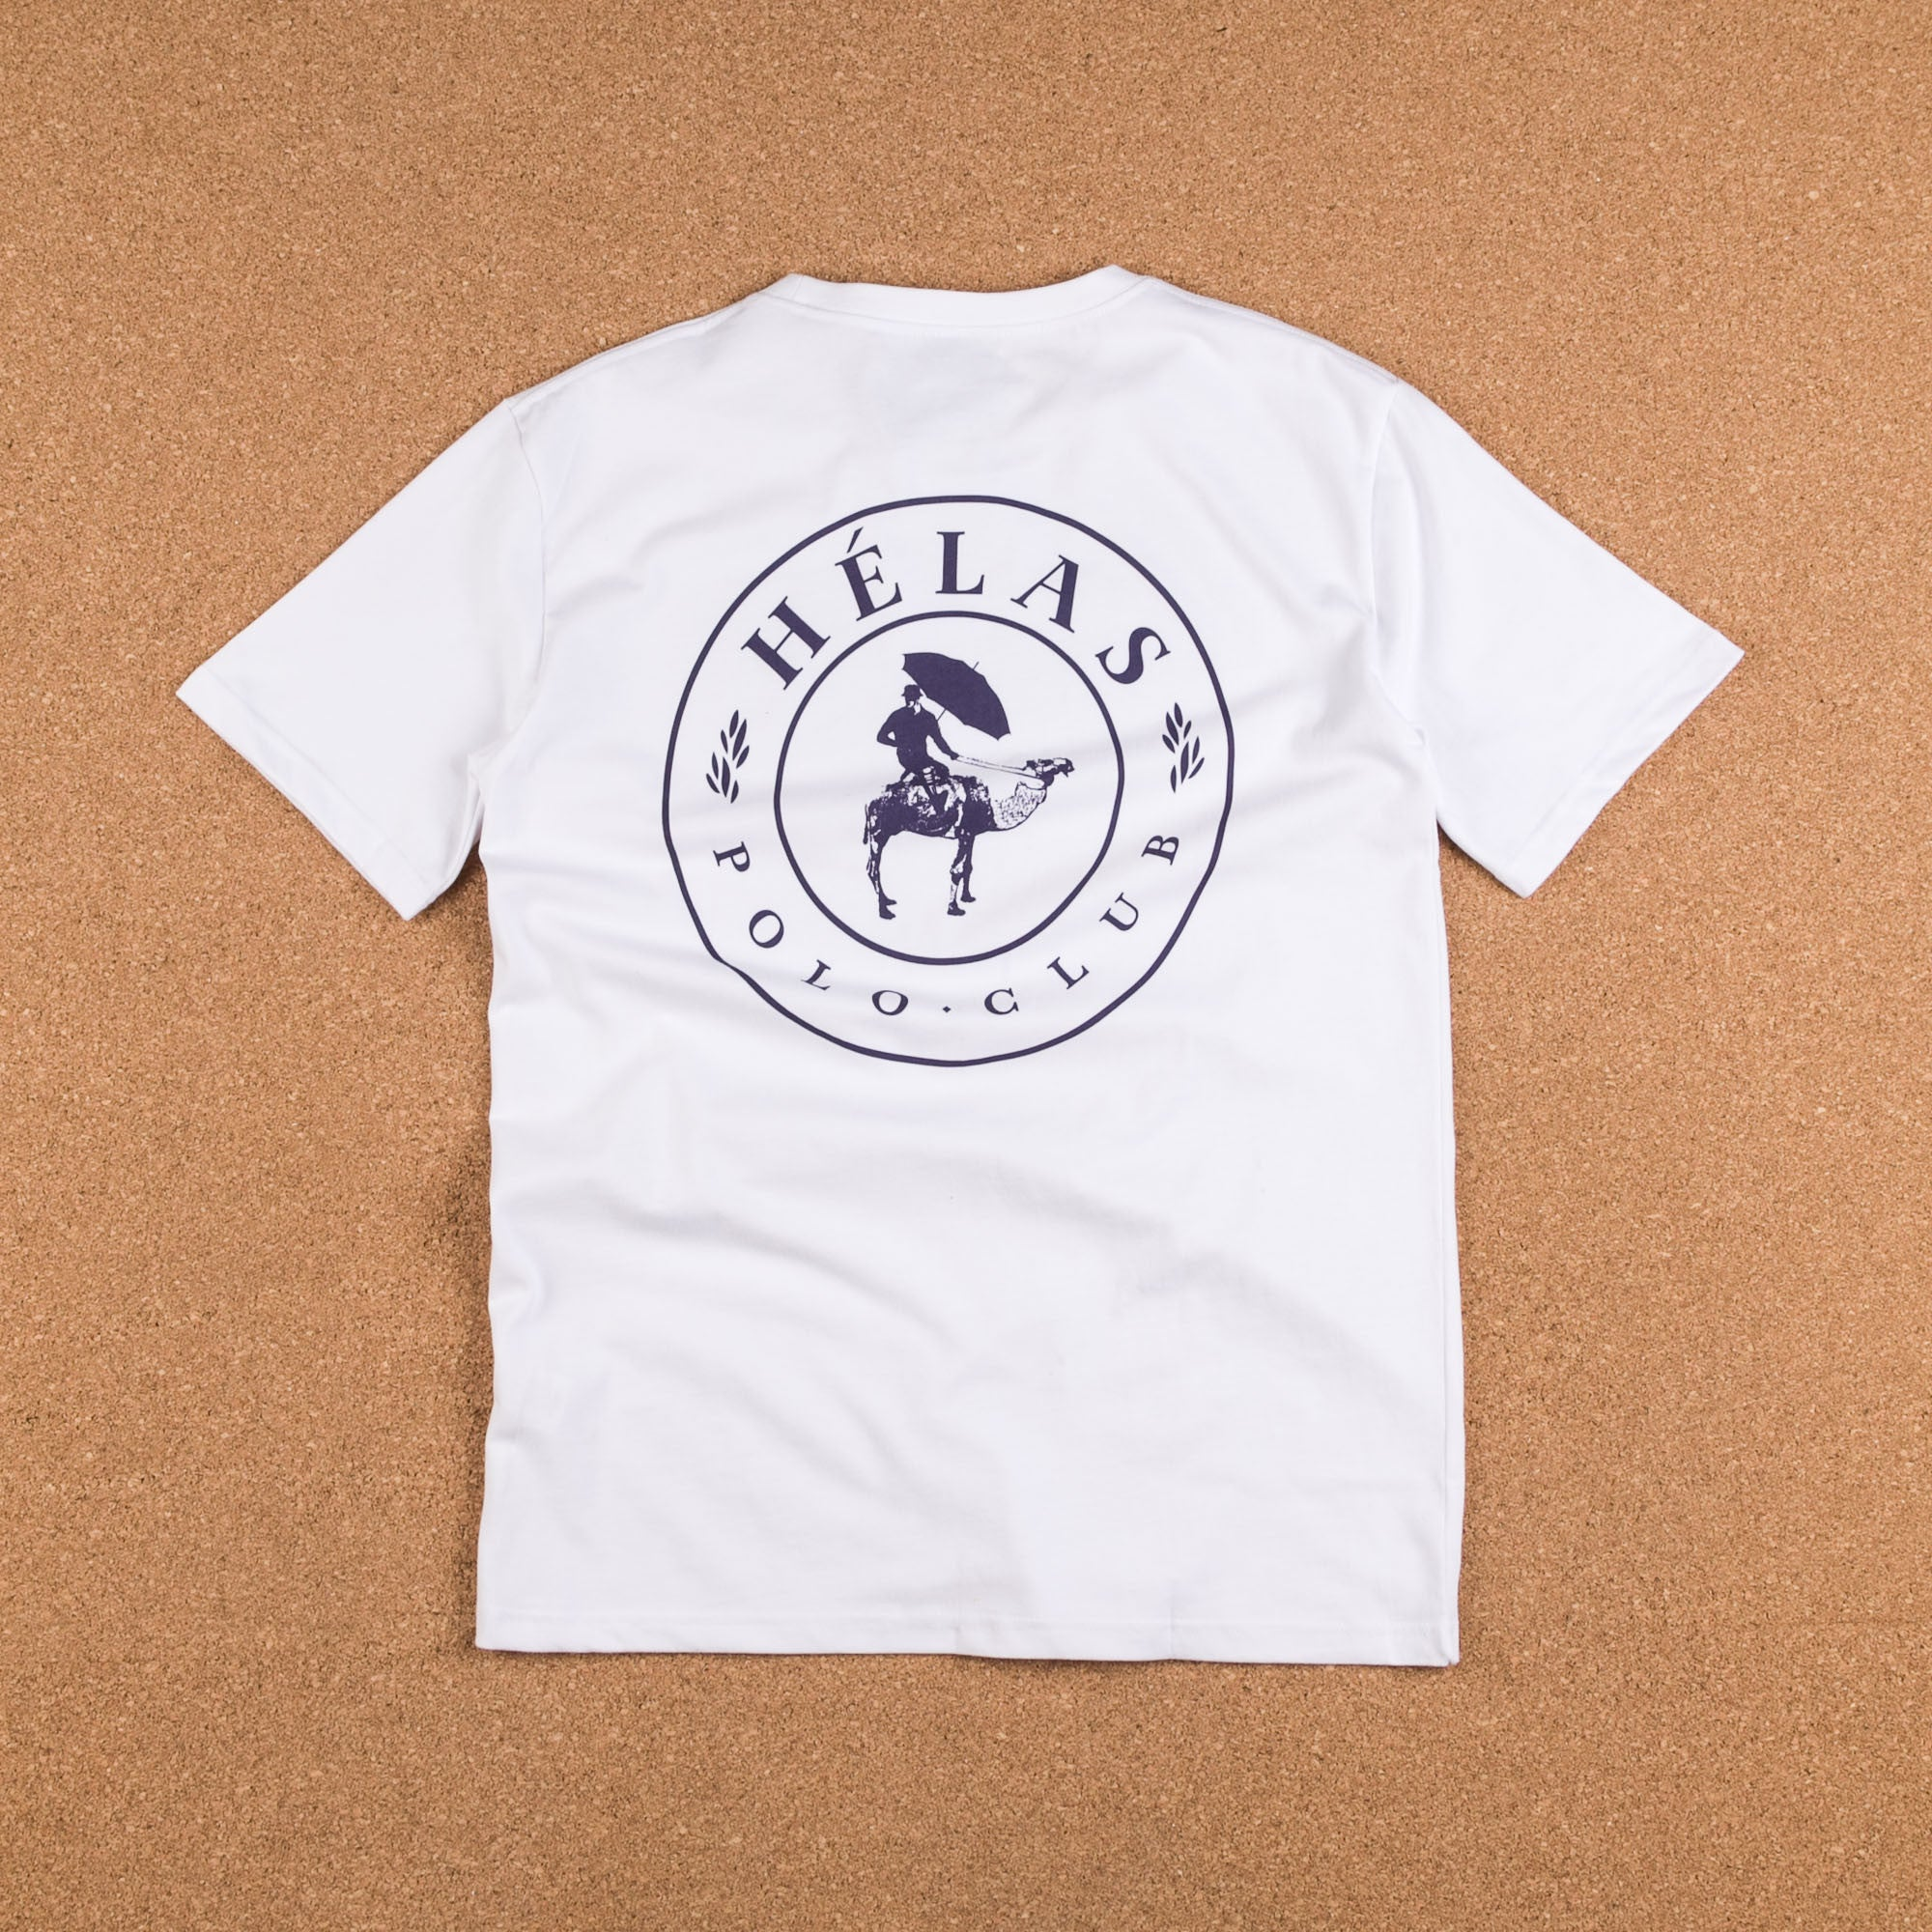 Helas Polo Club T-Shirt - White